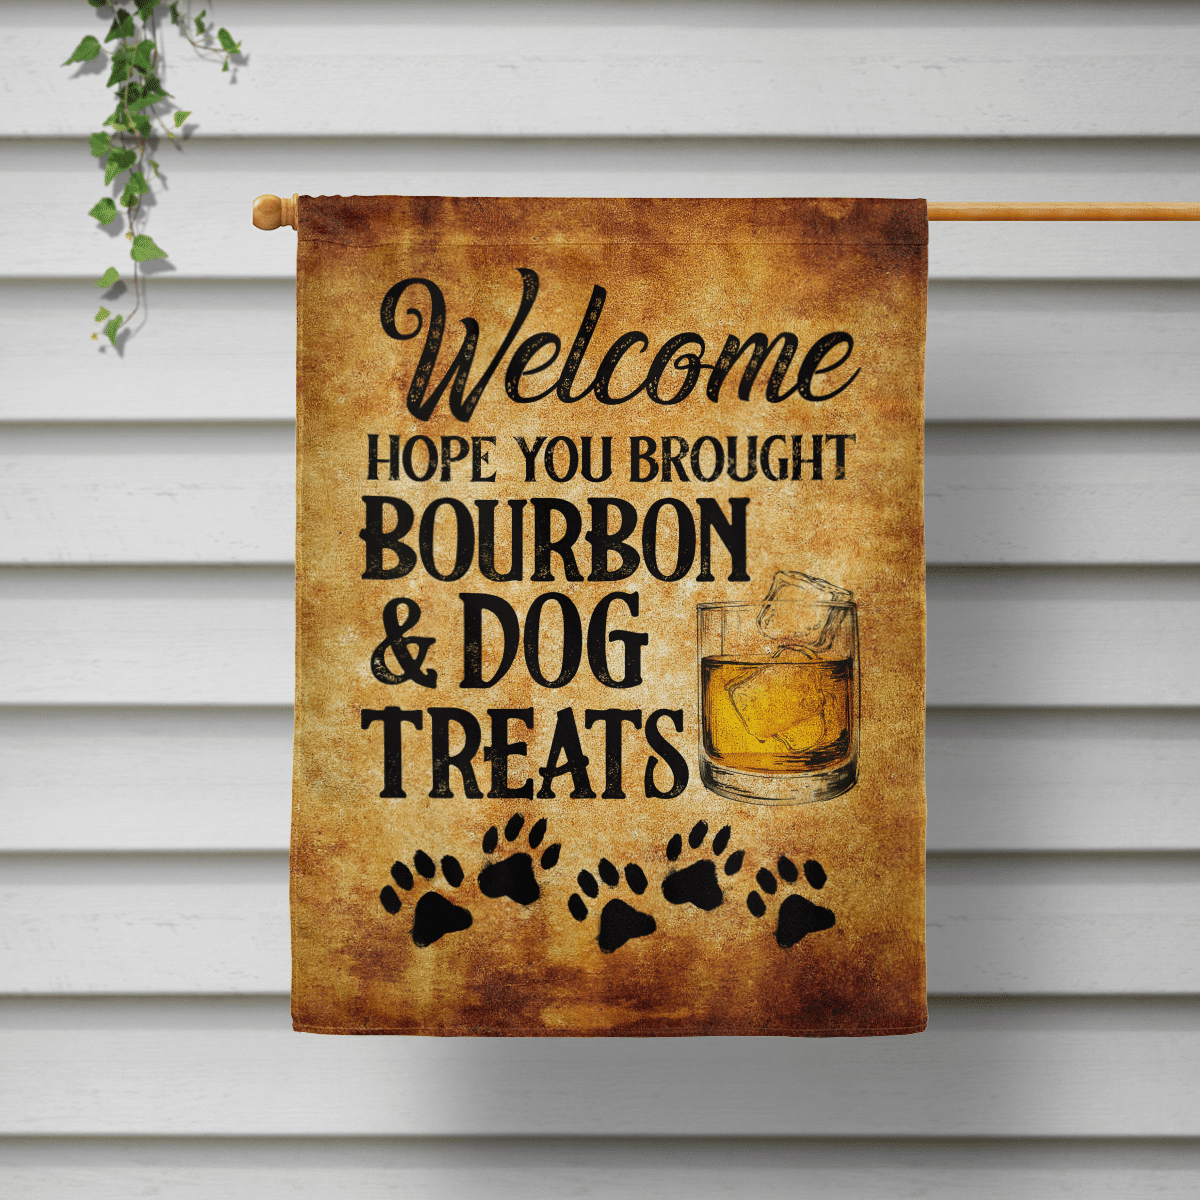 Welcome hope you brought bourbon & dog treats